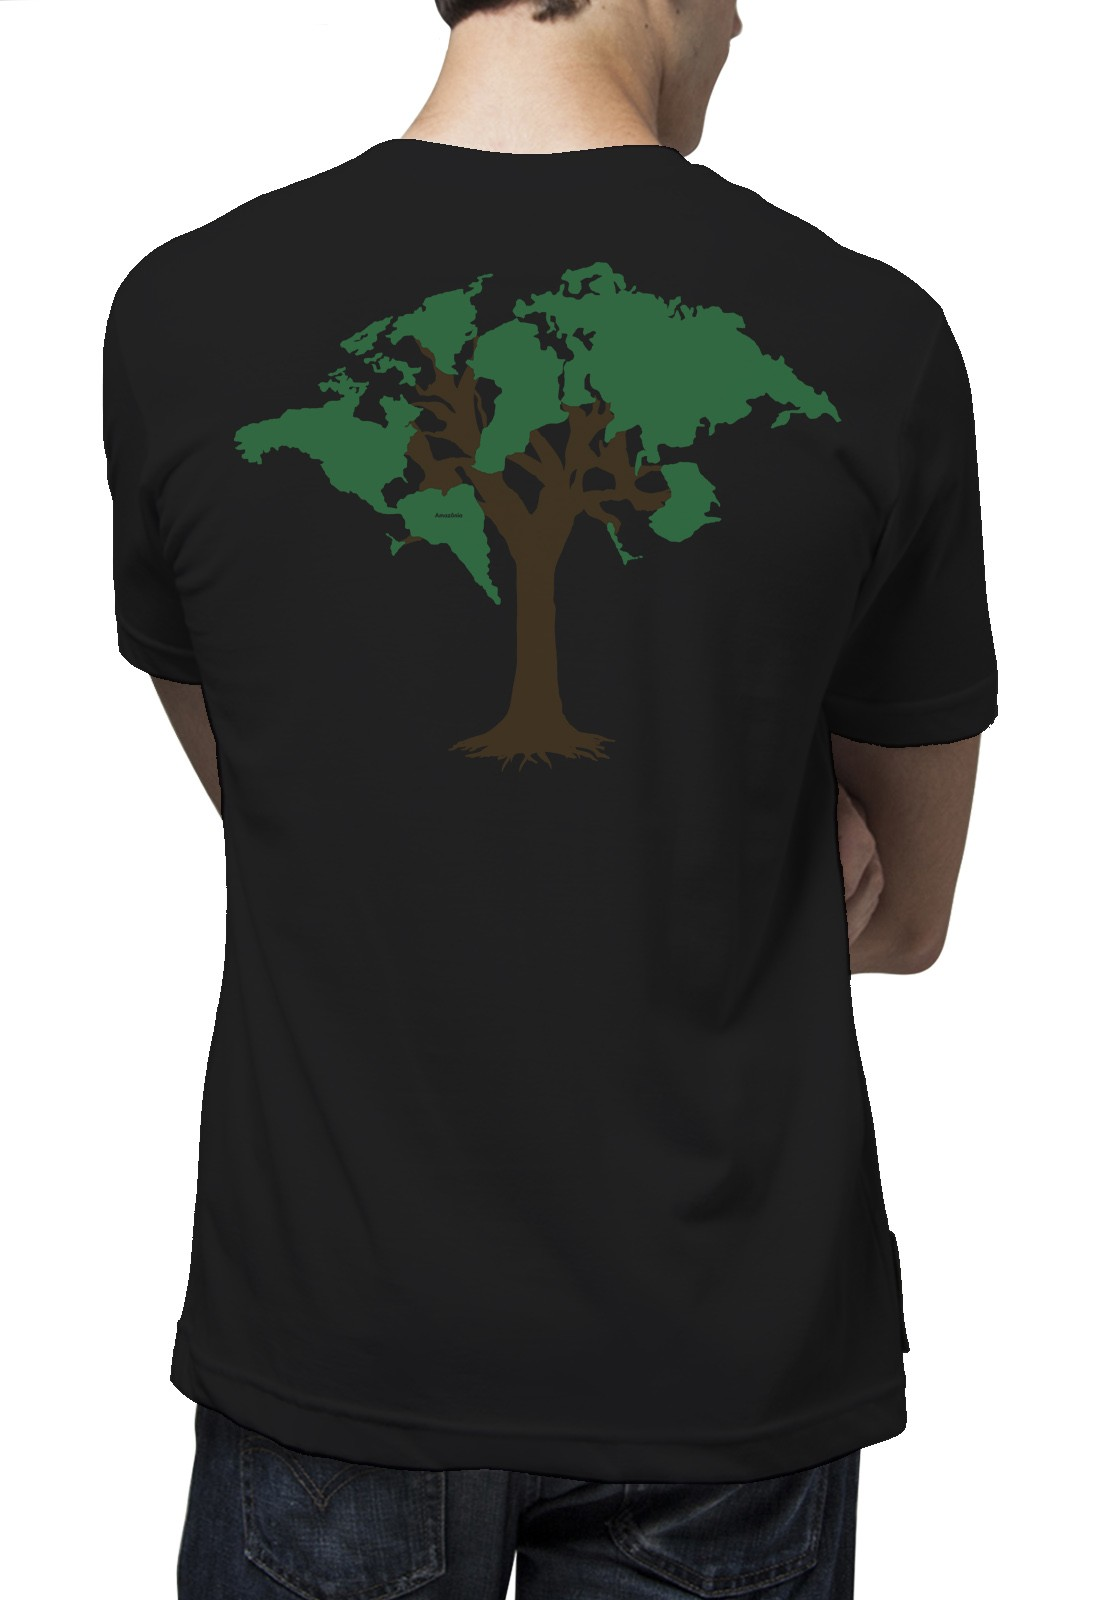 Camiseta Amazônia World Tree - Preto